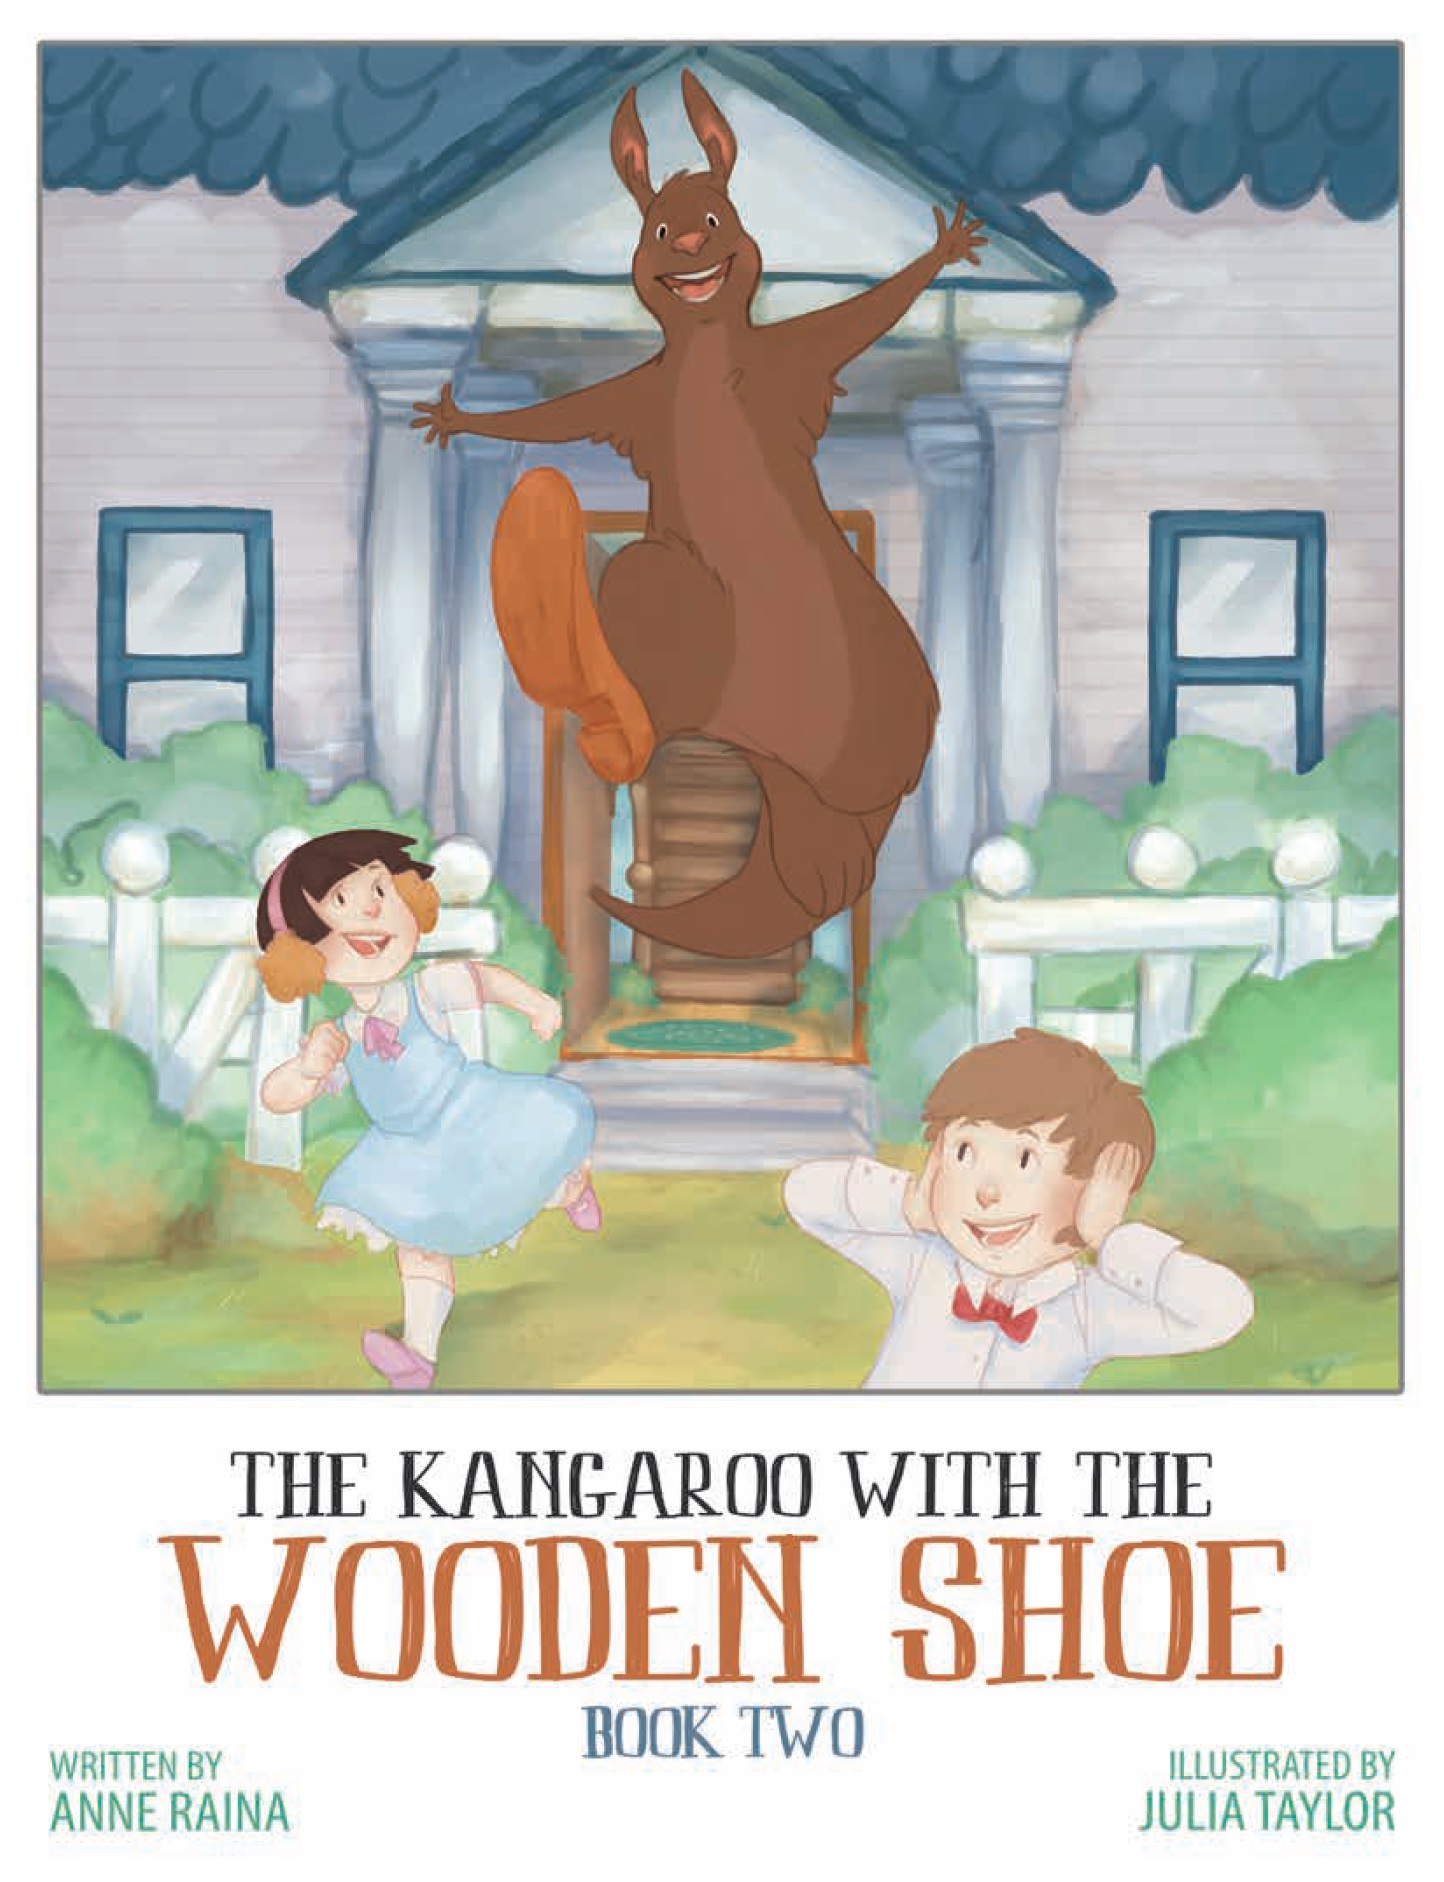 The Kangaroo With The Wooden Shoe! - Book 2